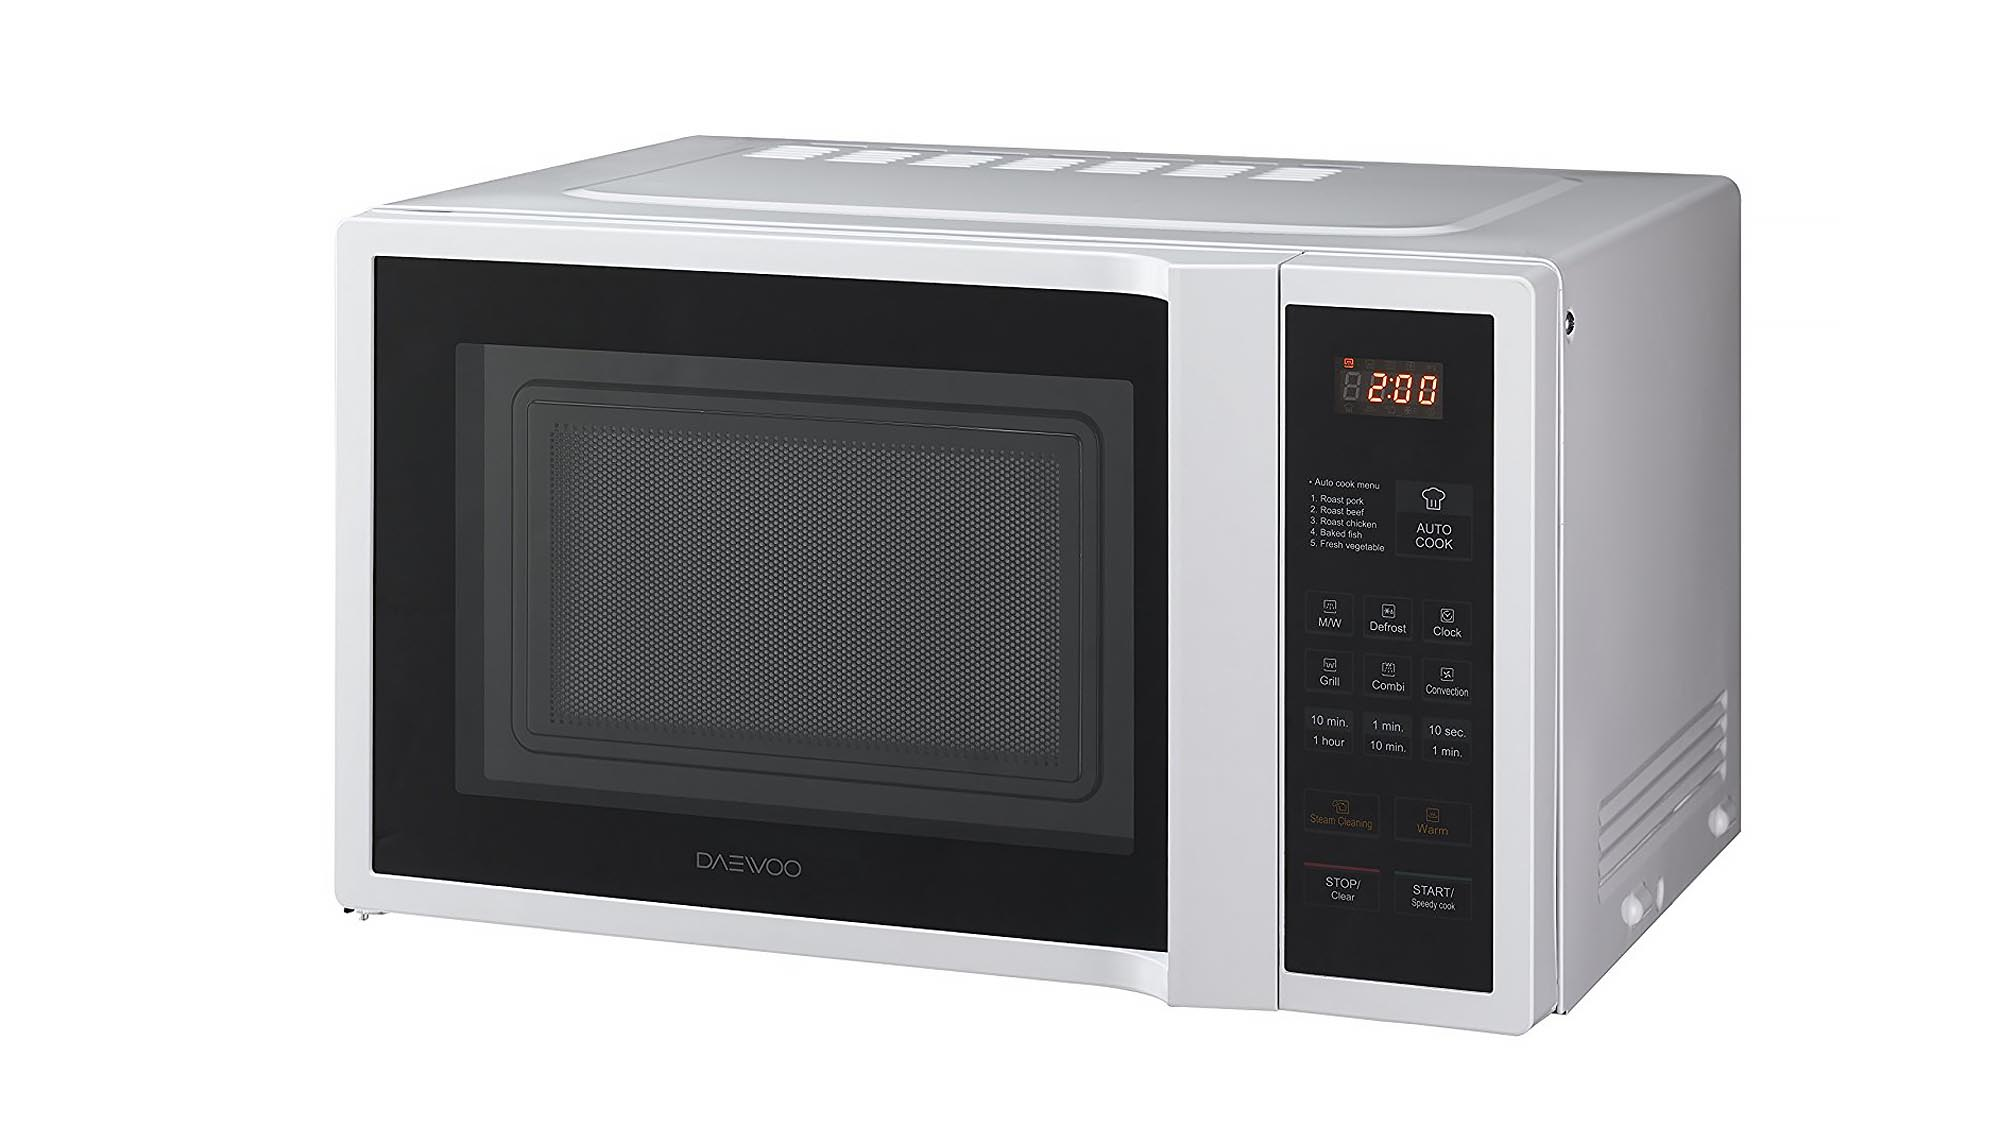 top marvelous pics best combo sharp microwave image ft wolf appliances watt countertop convection for cu trends oven and countertops counter styles fascinating files in gourmet